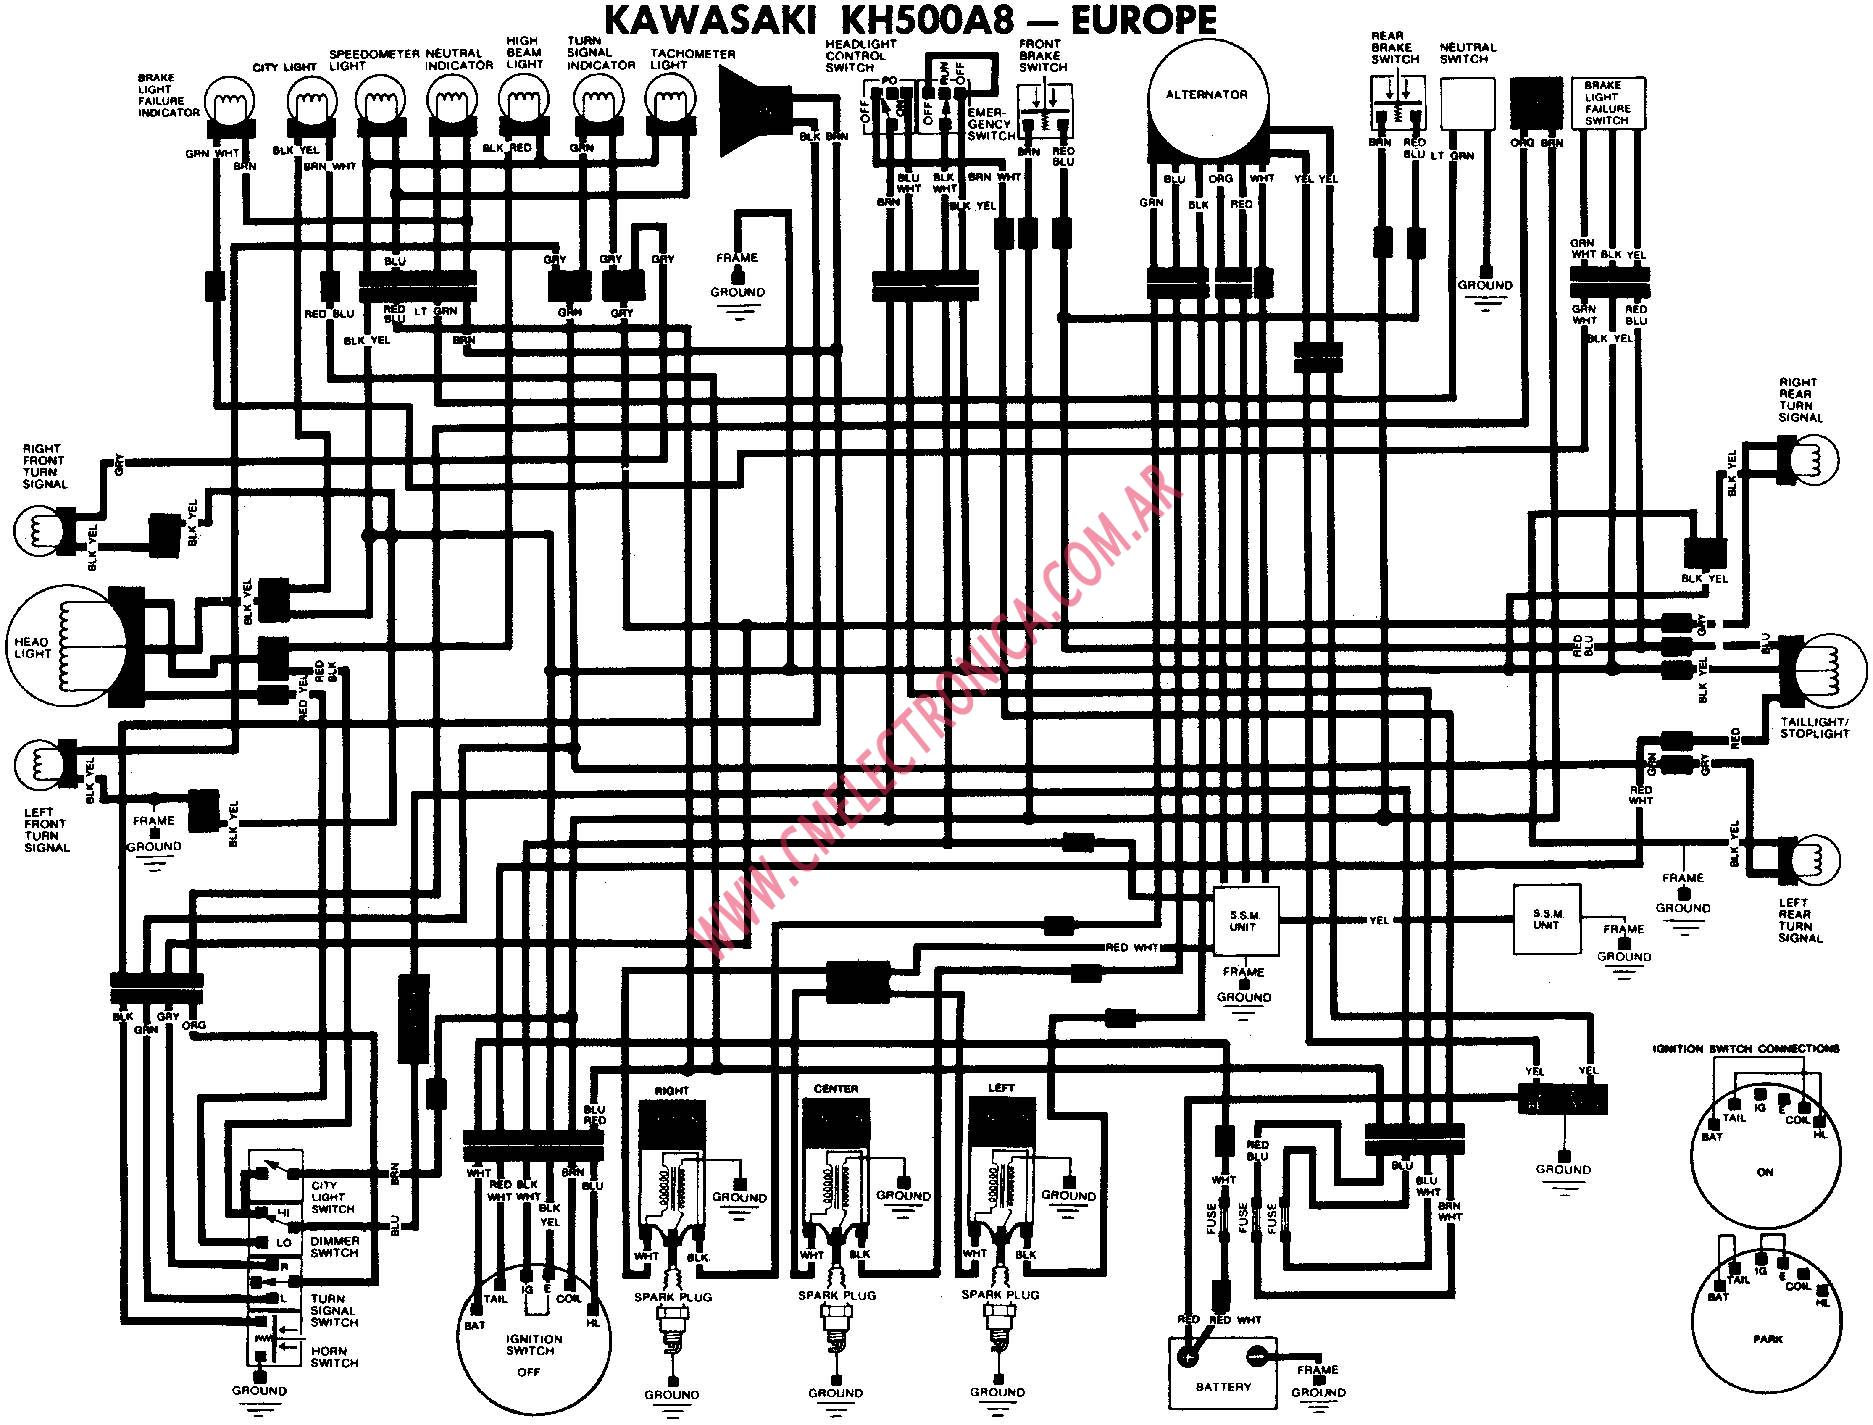 ninja wiring diagram schematics and wiring diagrams ninja wiring diagram diagrams and schematics kawasaki